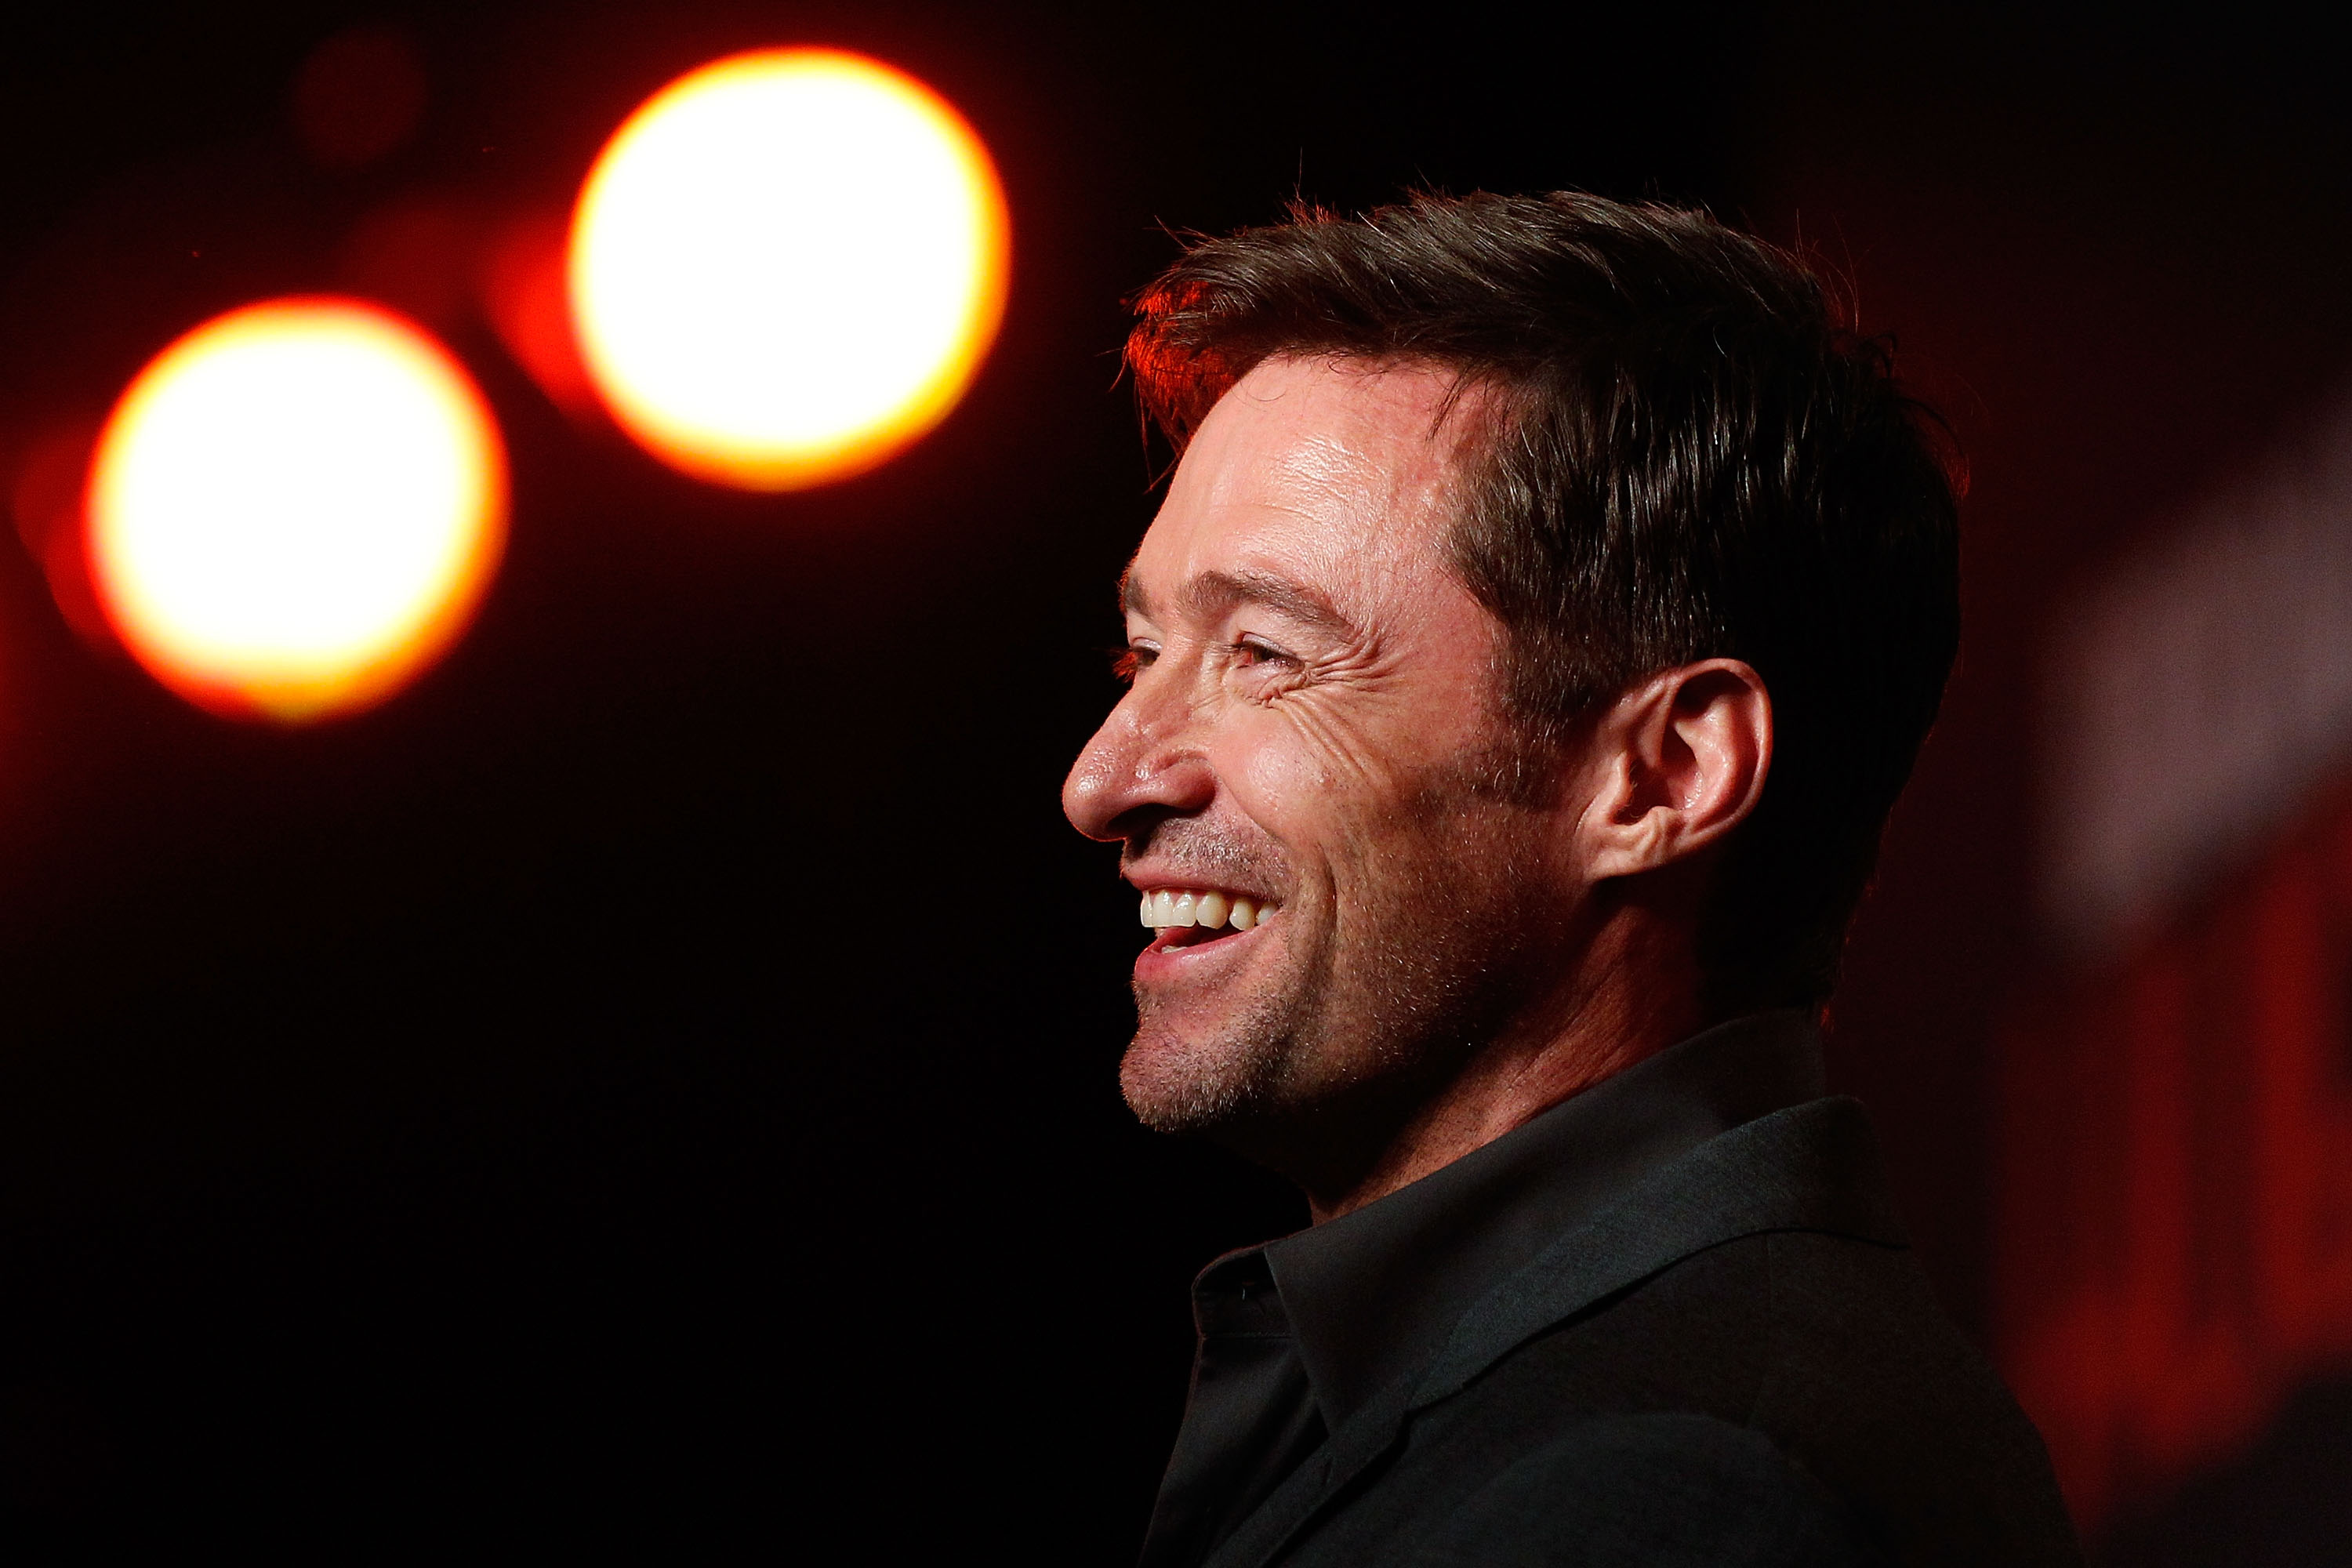 Hugh Jackman Actor Les Misérables Hugh Michael Jackman is an Australian actor singer multiinstrumentalist dancer and producer Jackman has won